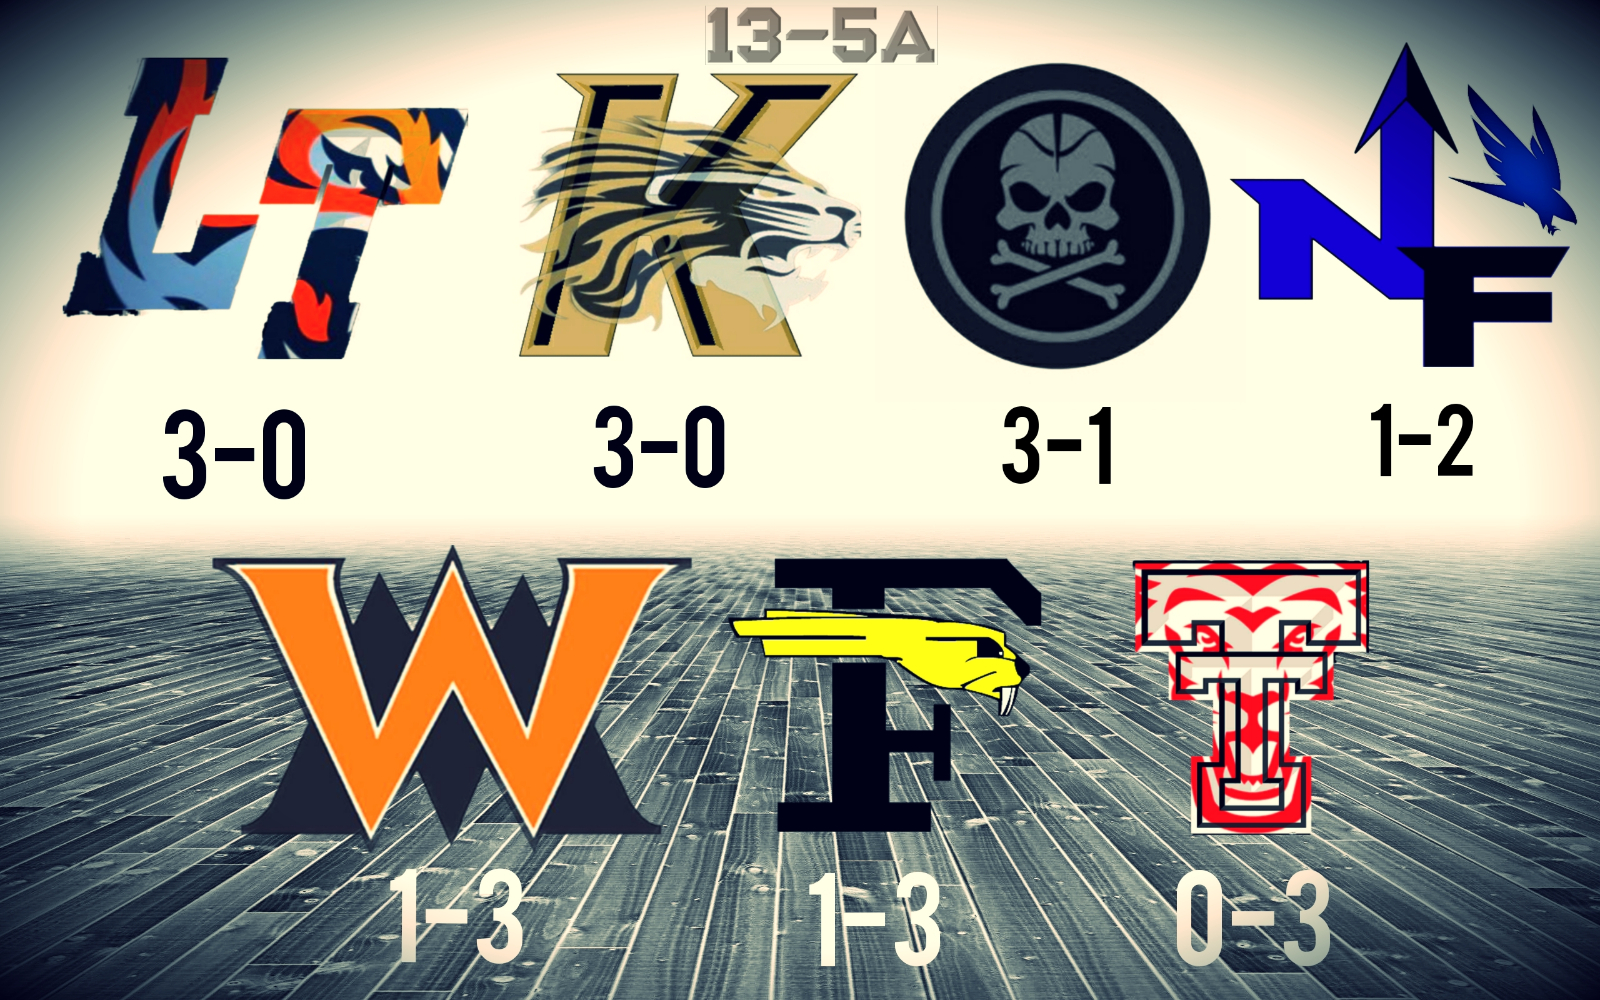 13-5A Standings after 2 Weeks